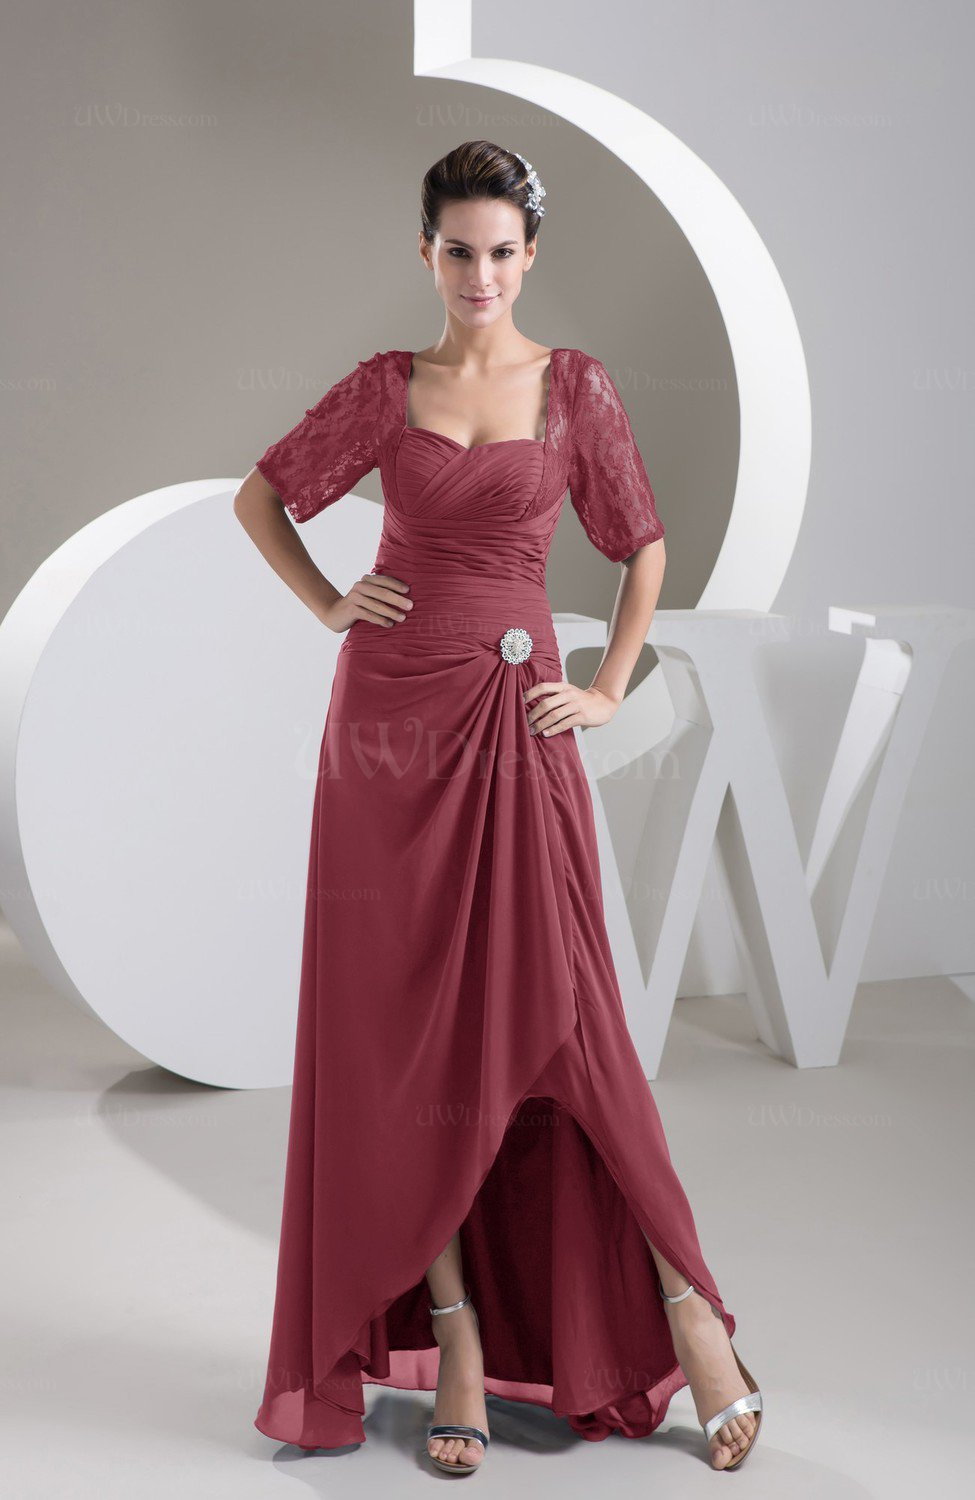 b18b03c86d7 Wine with Sleeves Bridesmaid Dress Chiffon Classy Apple Trendy Plain Full  Figure